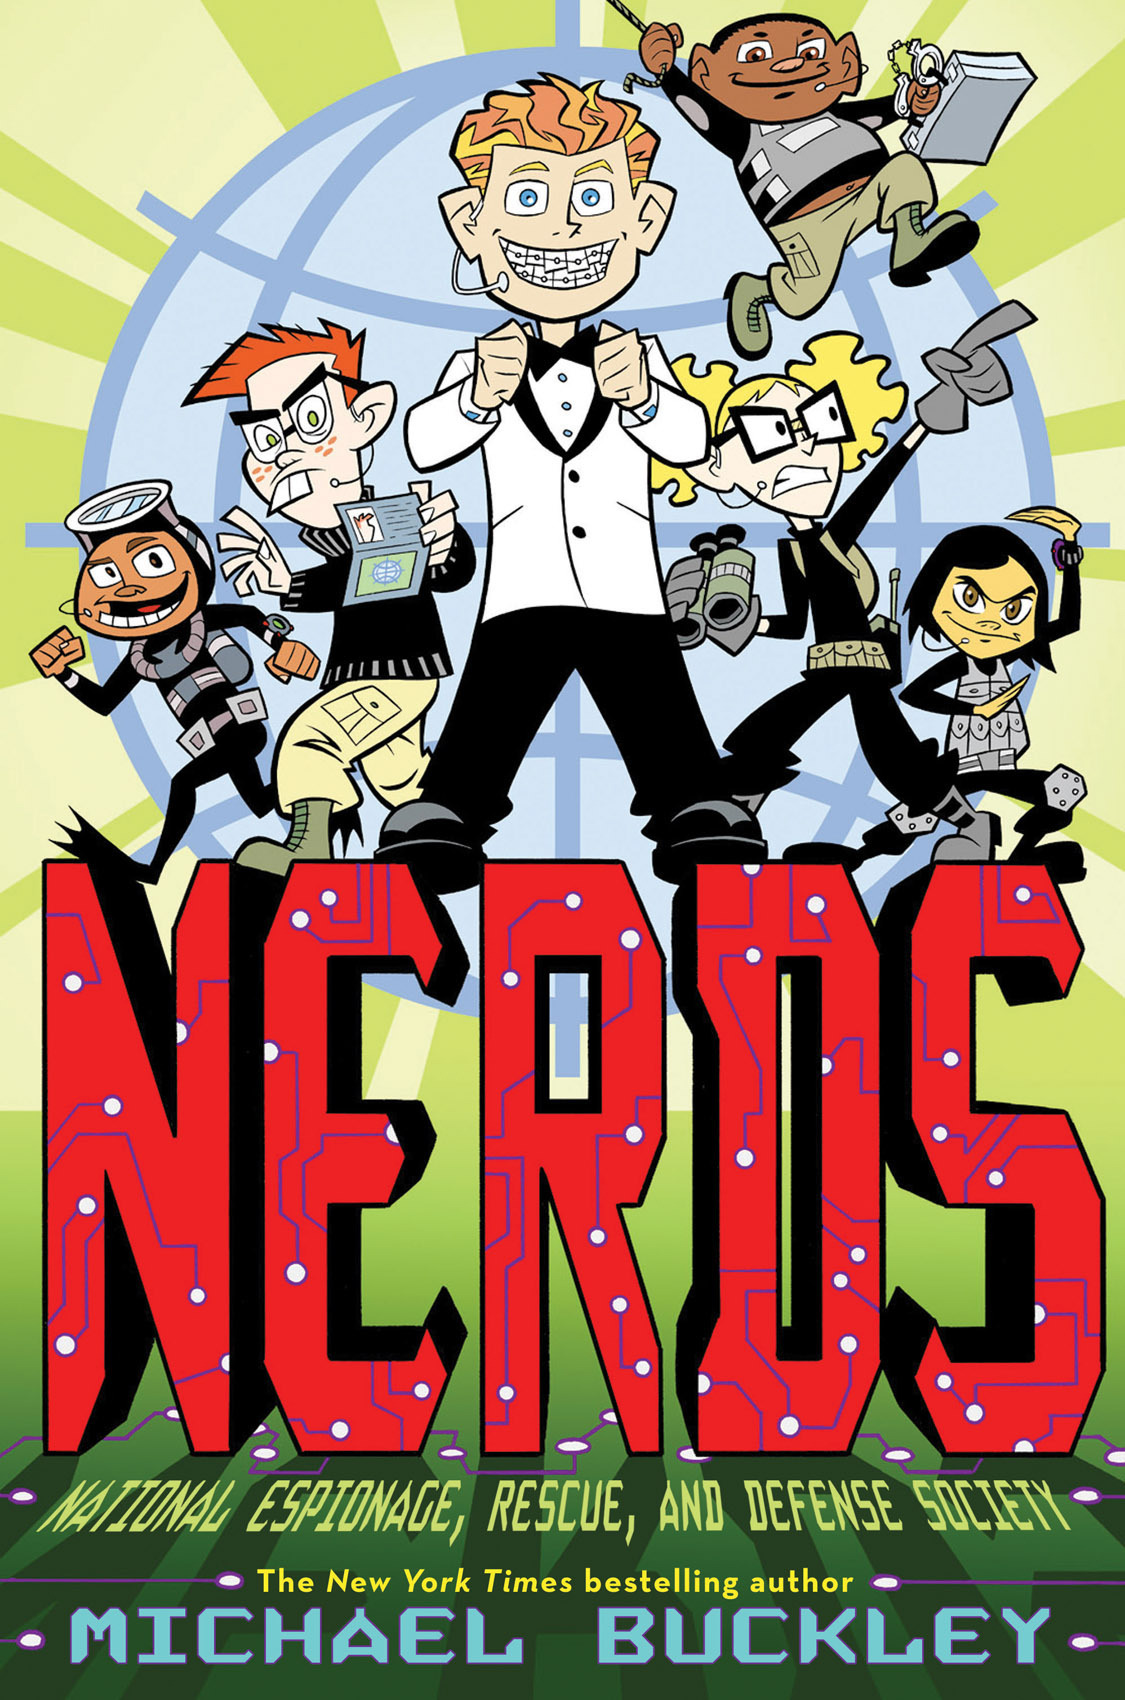 N-E-R-D-S-nerds-by-michael-buckley-21015428-1125-1700